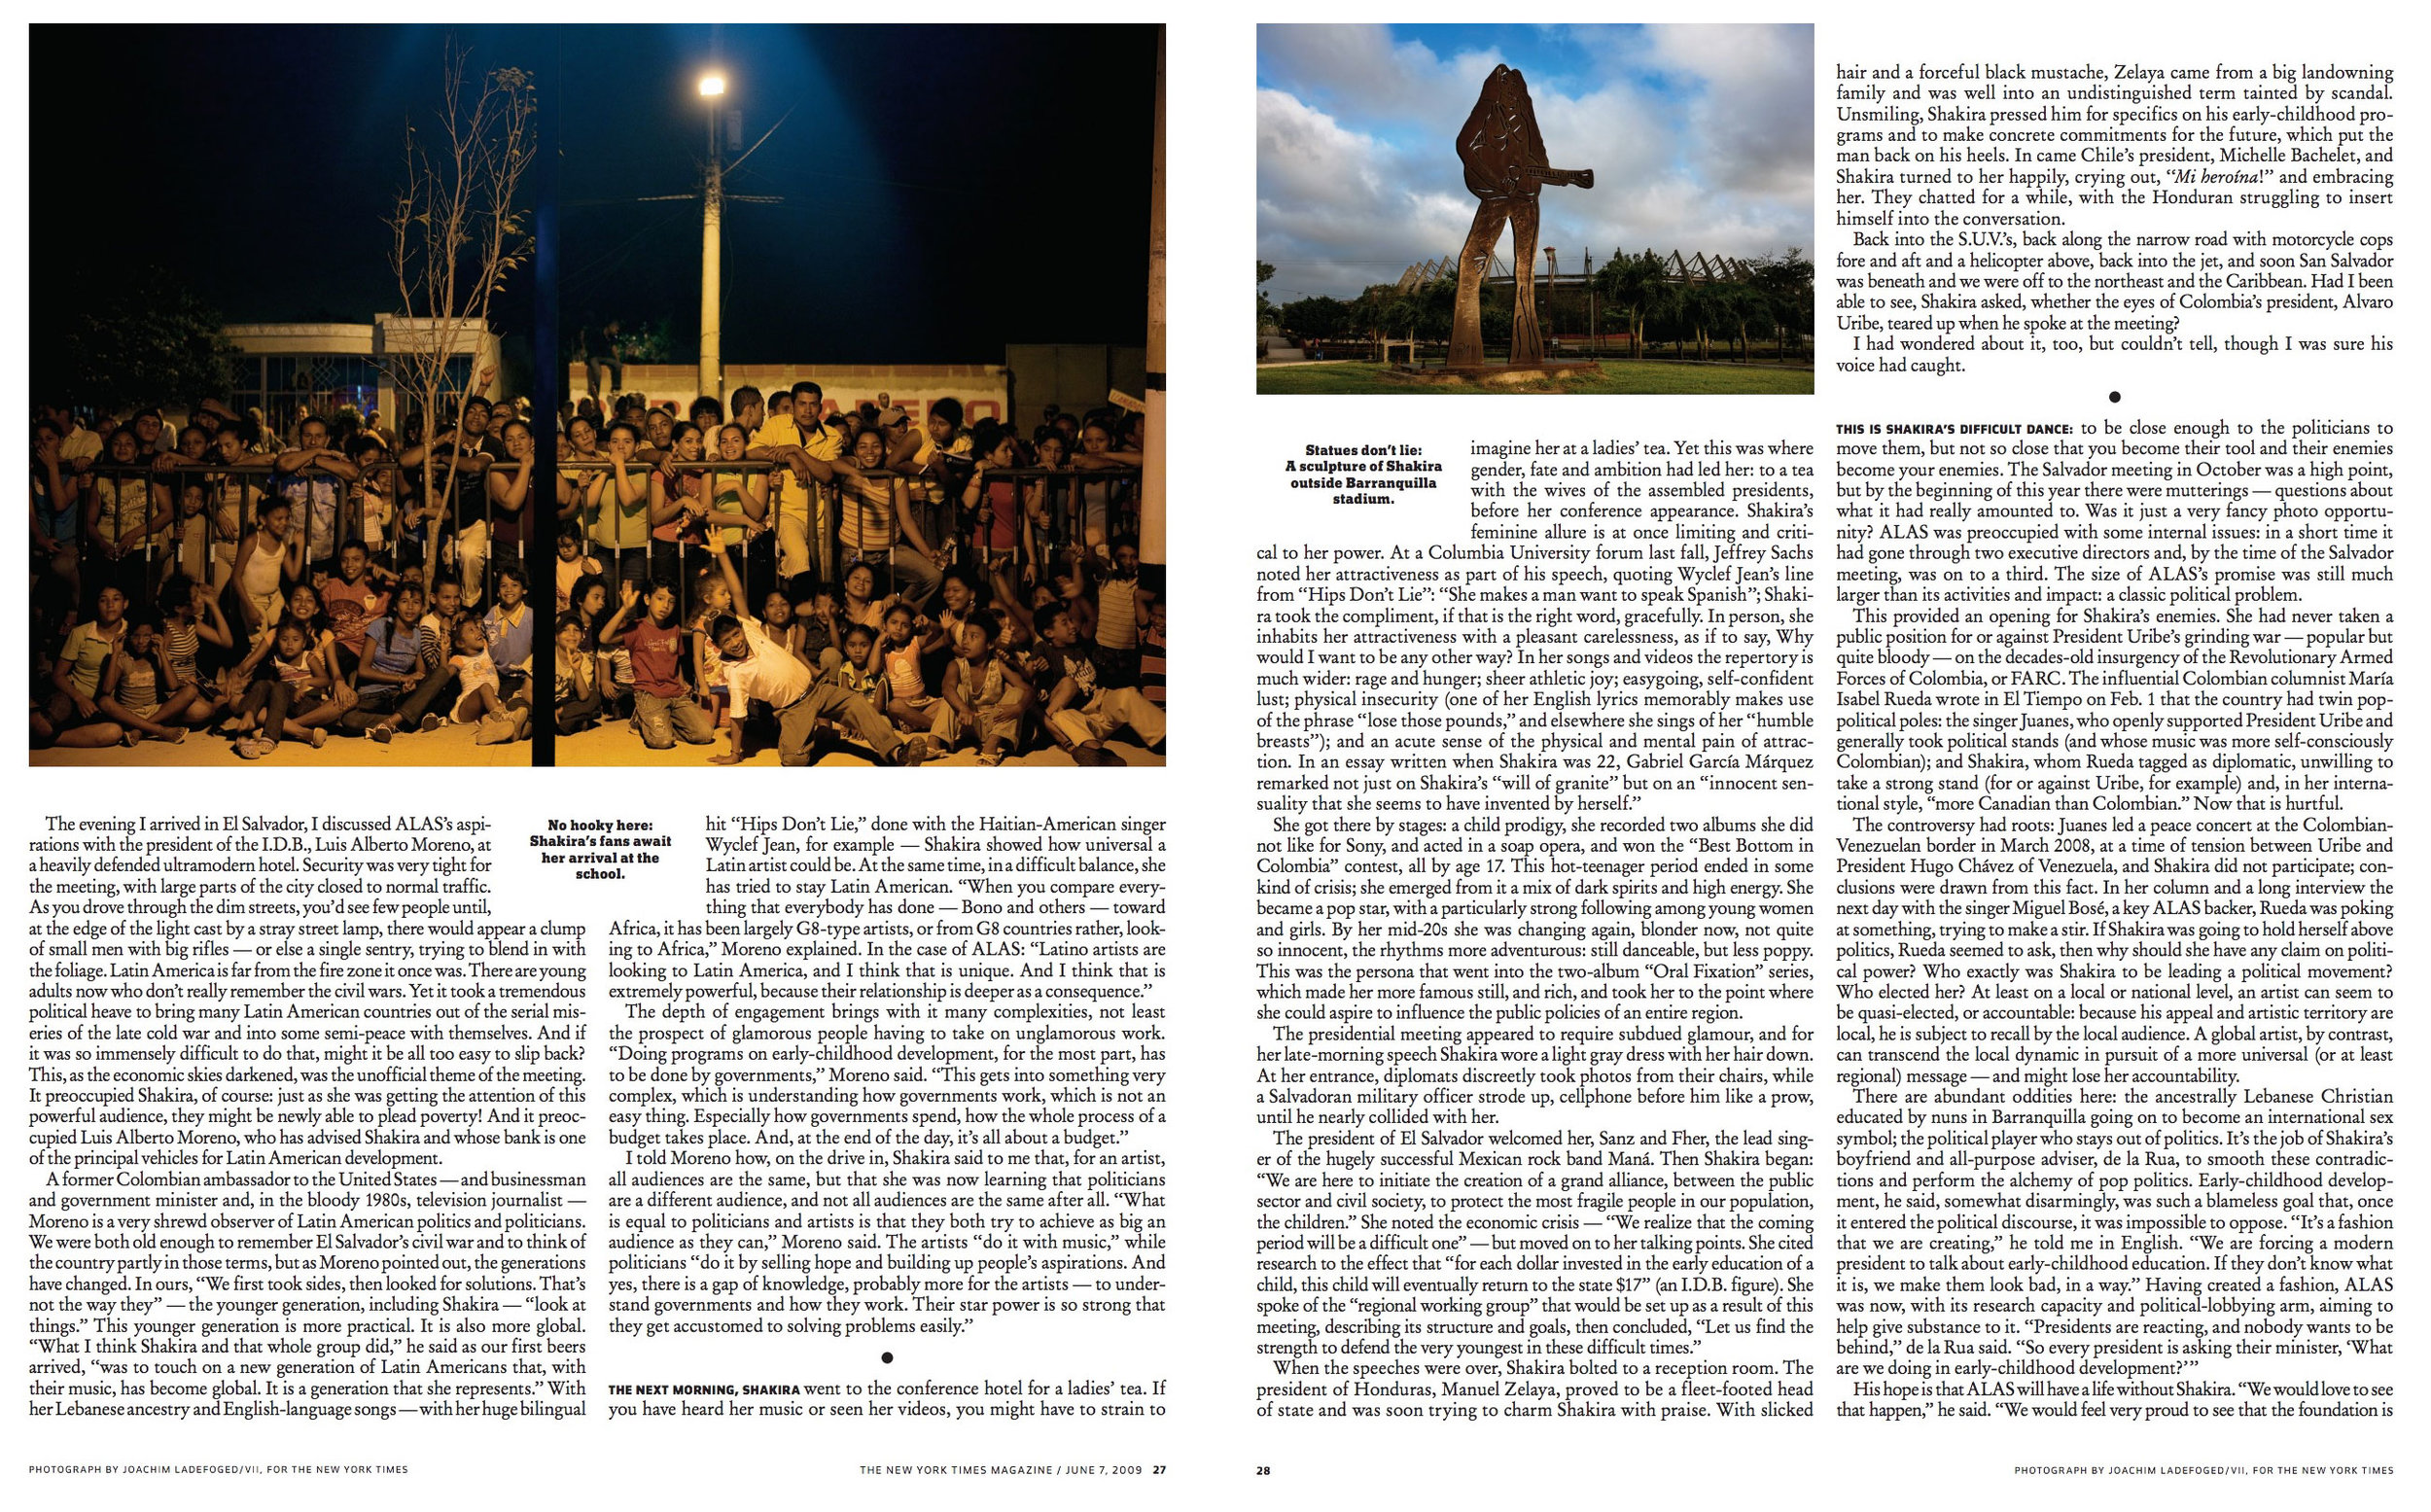 Client: The New York Times Magazine Role: Producer, assigning photo editor Photographer: Joachim Ladefoged/VII